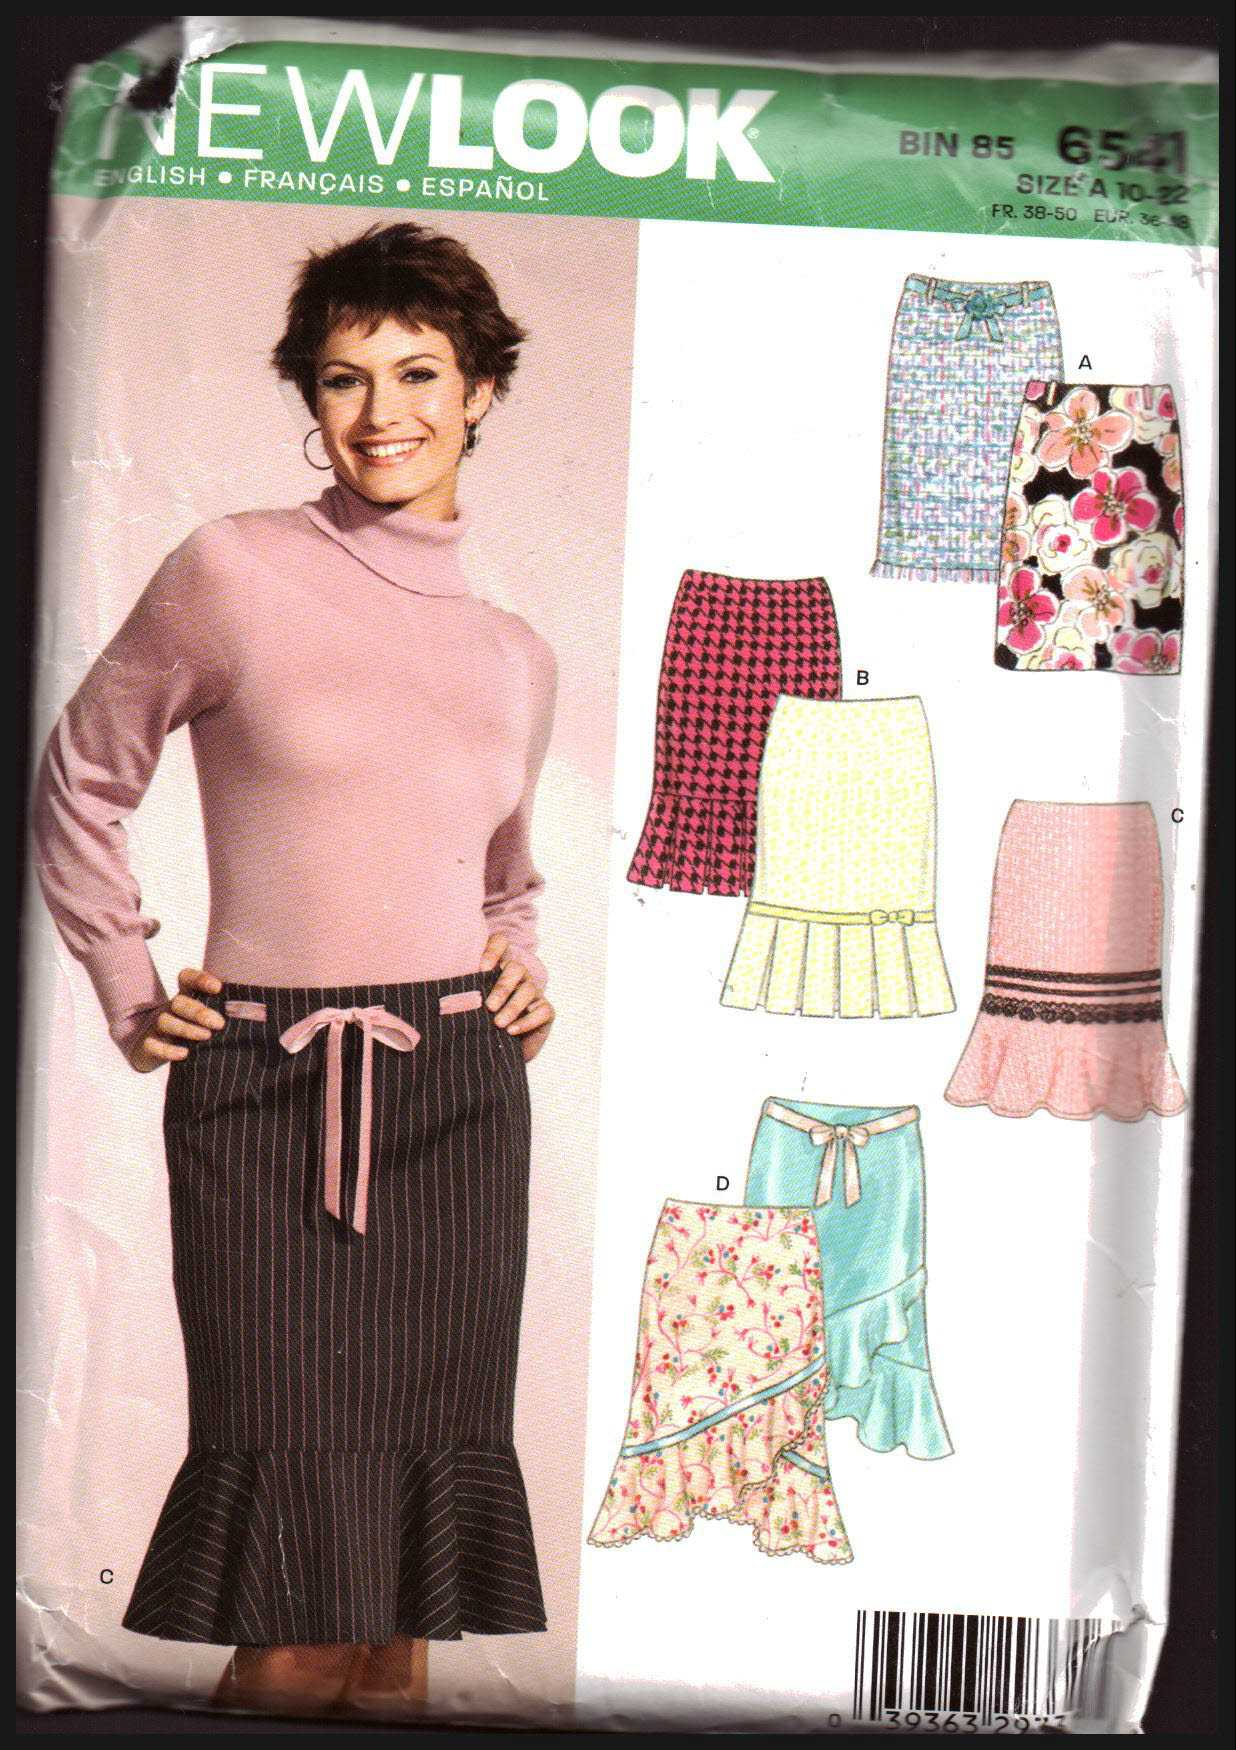 aabc5e228a7 New Look 6541 Skirts Size: A 10-22 Uncut